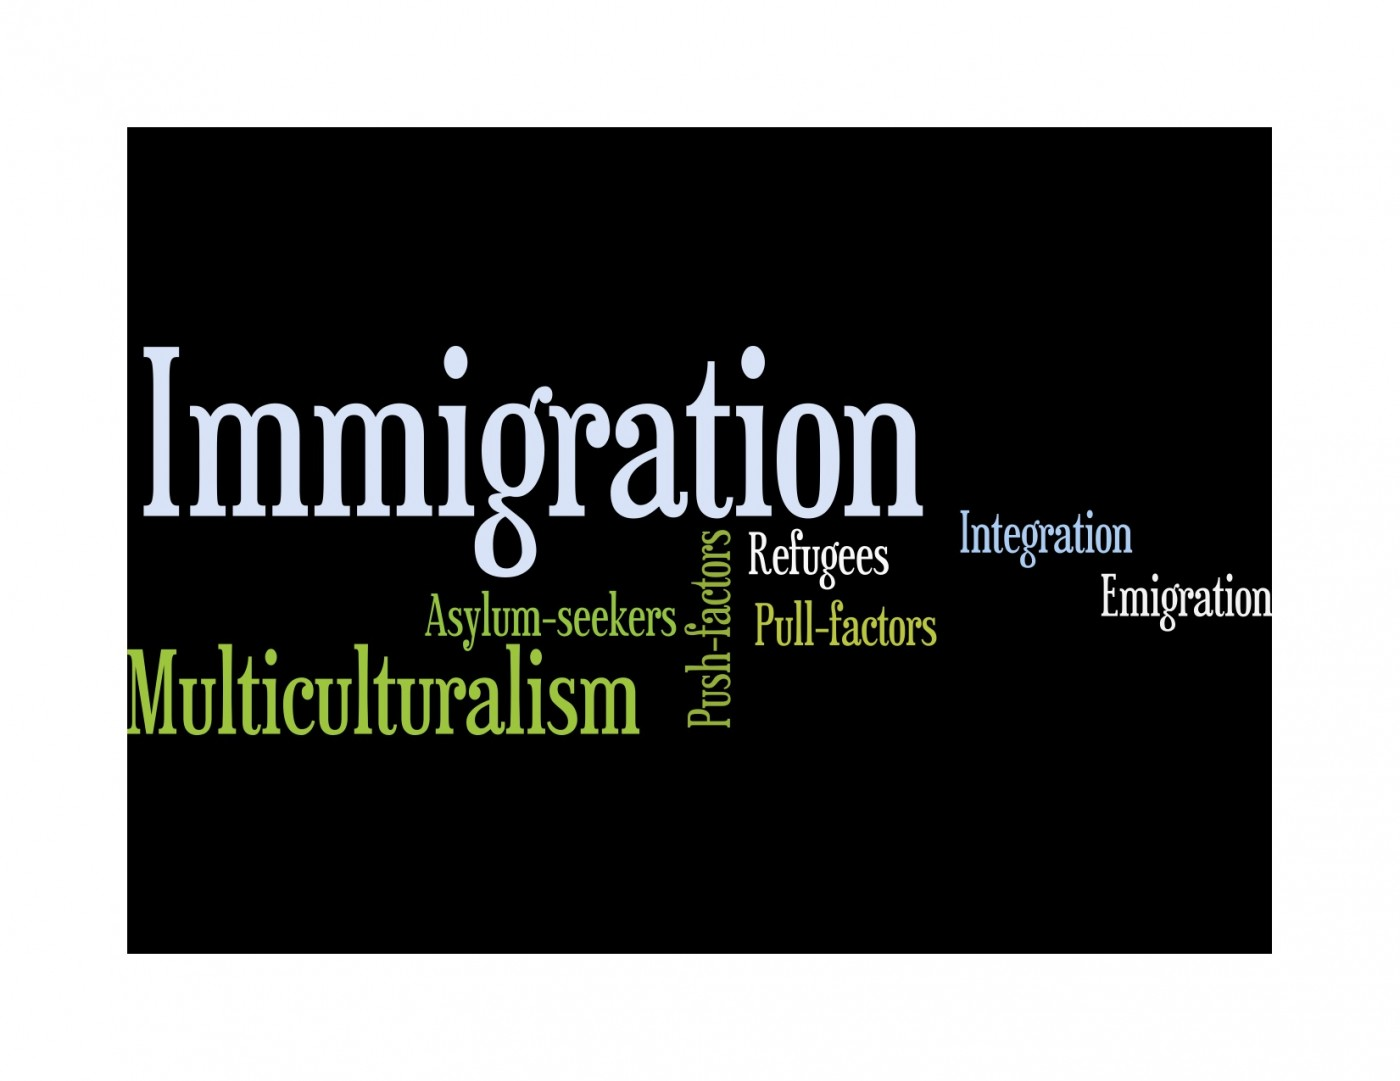 016 Immigration Essay Example Exceptional Conclusion Topics 1400